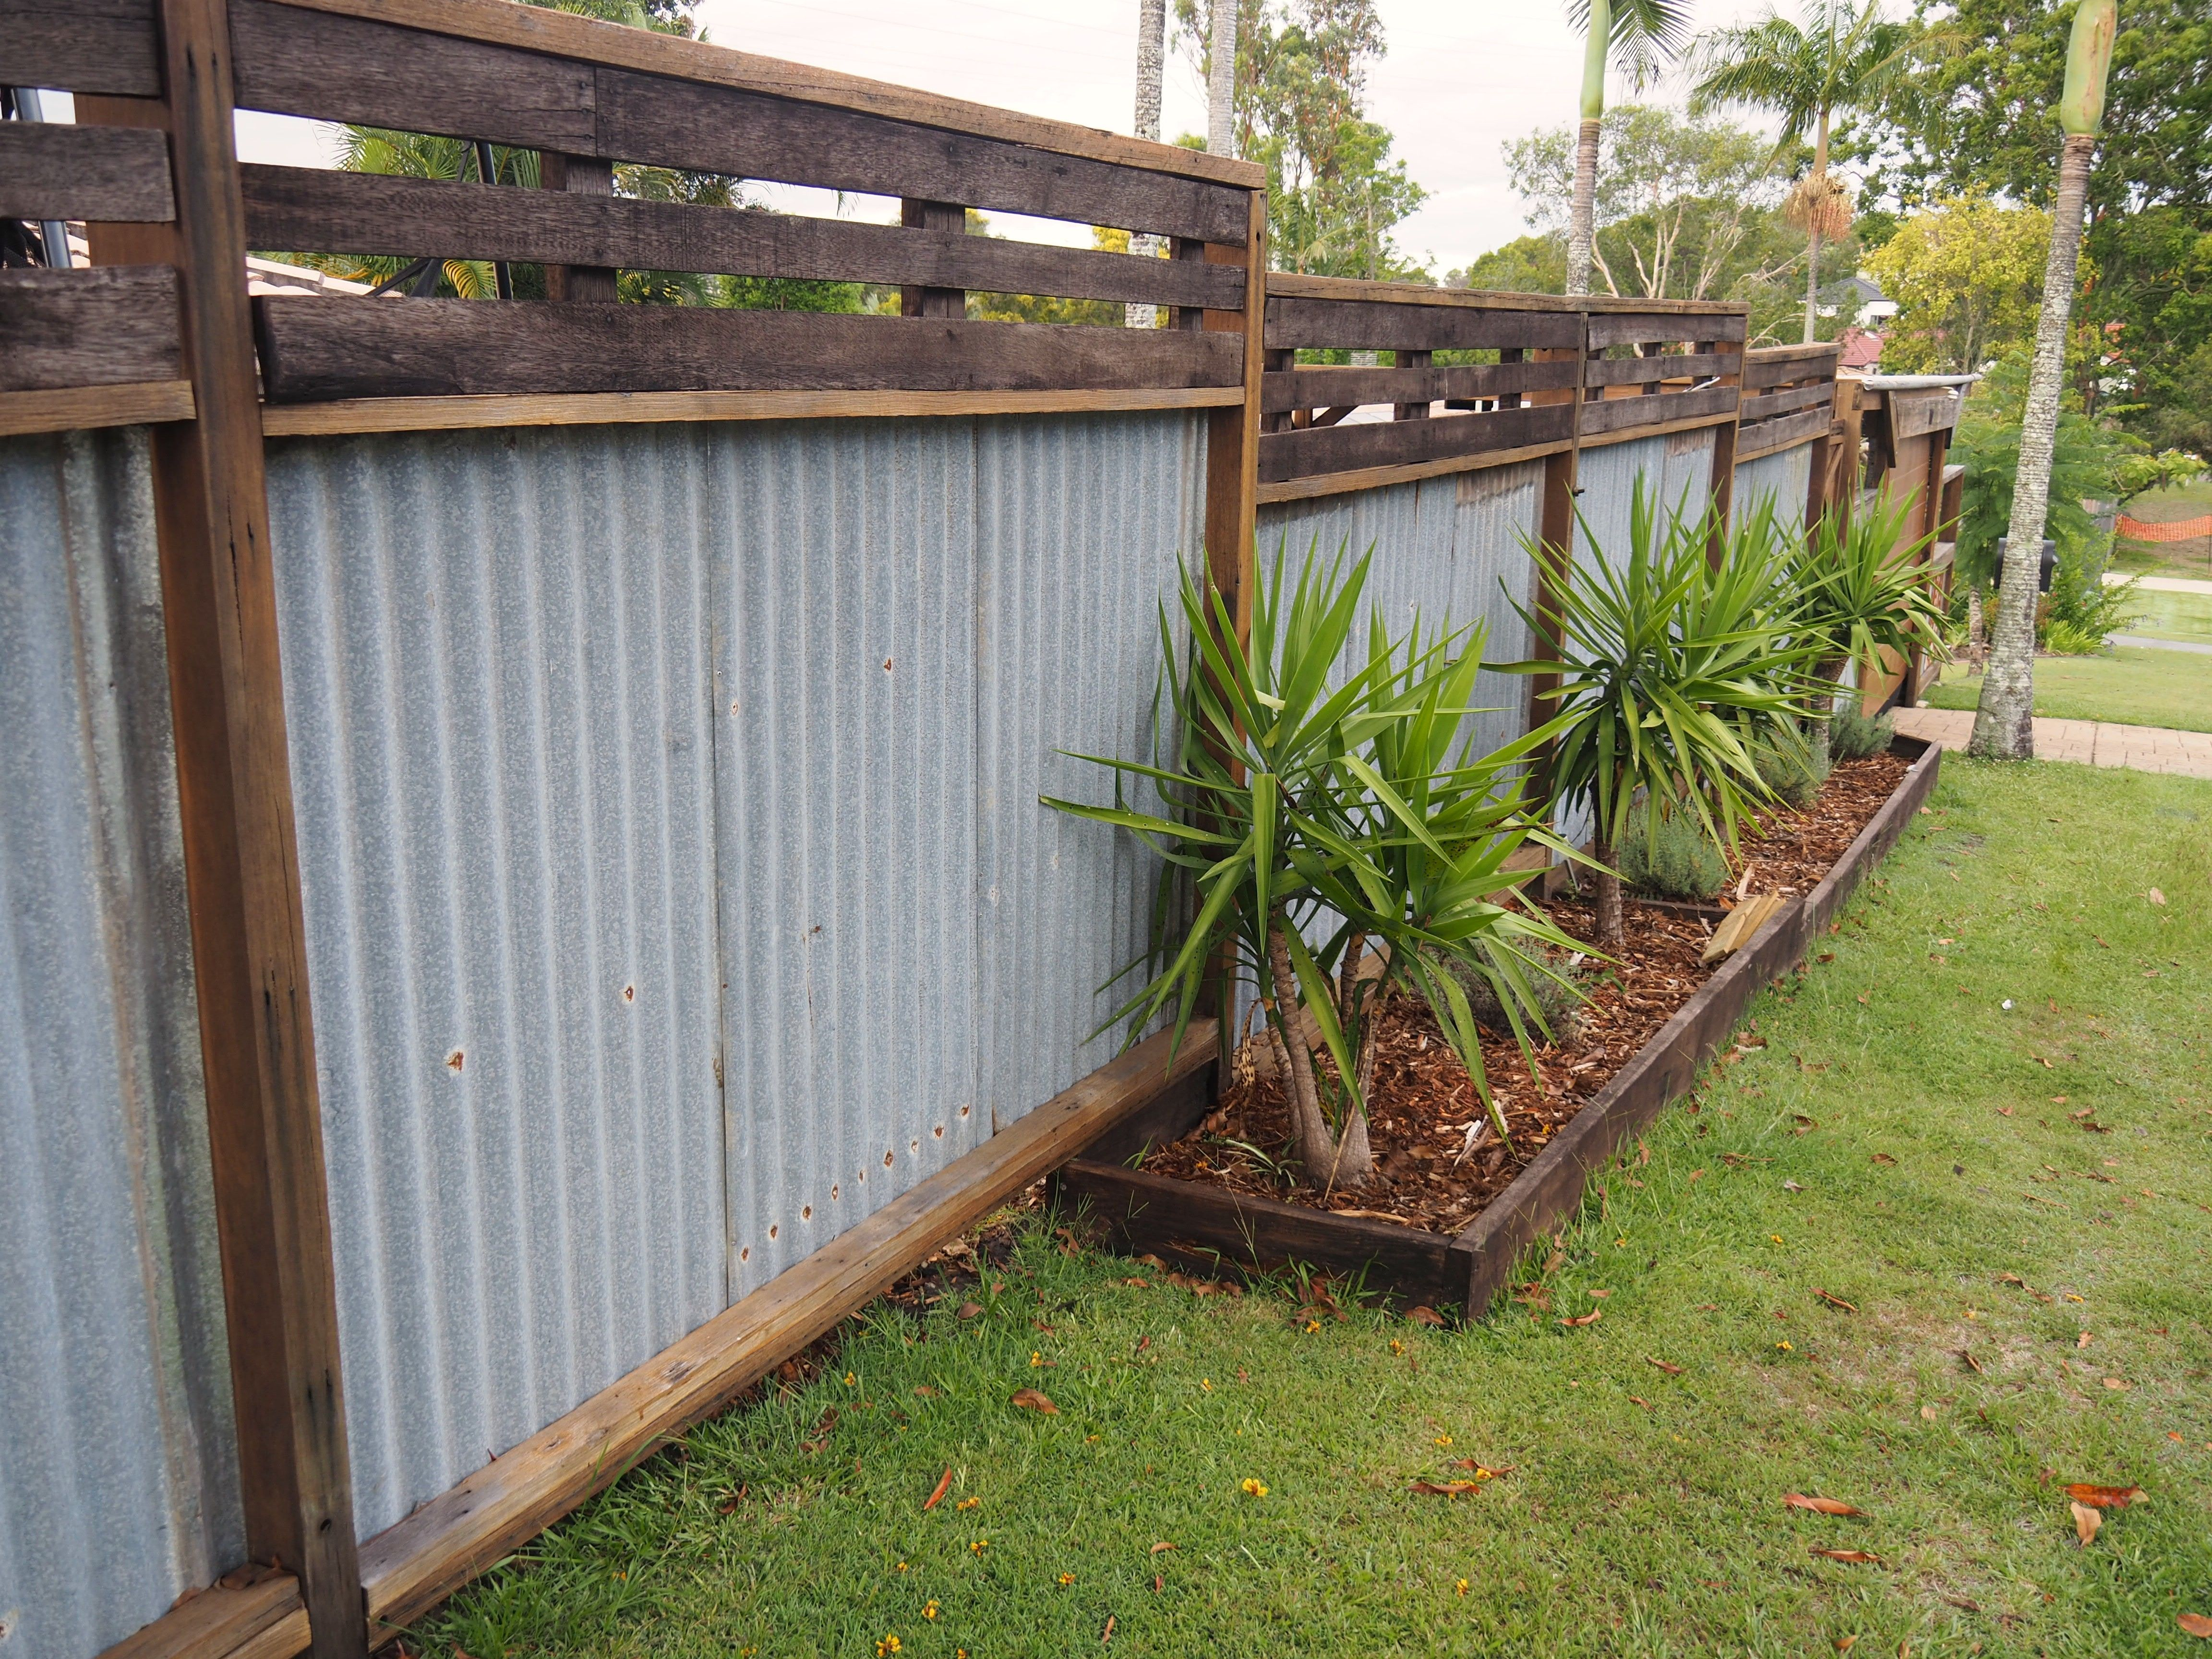 rusted corrugated metal fence. Modren Corrugated Recycled Hardwood Timber Fence Rusty Corrugated Iron Timber Joist And  Bearers Salvaged From House Demolition Planed Sanded U0026 Oiled All DIY By Myself  With Rusted Corrugated Metal Fence G